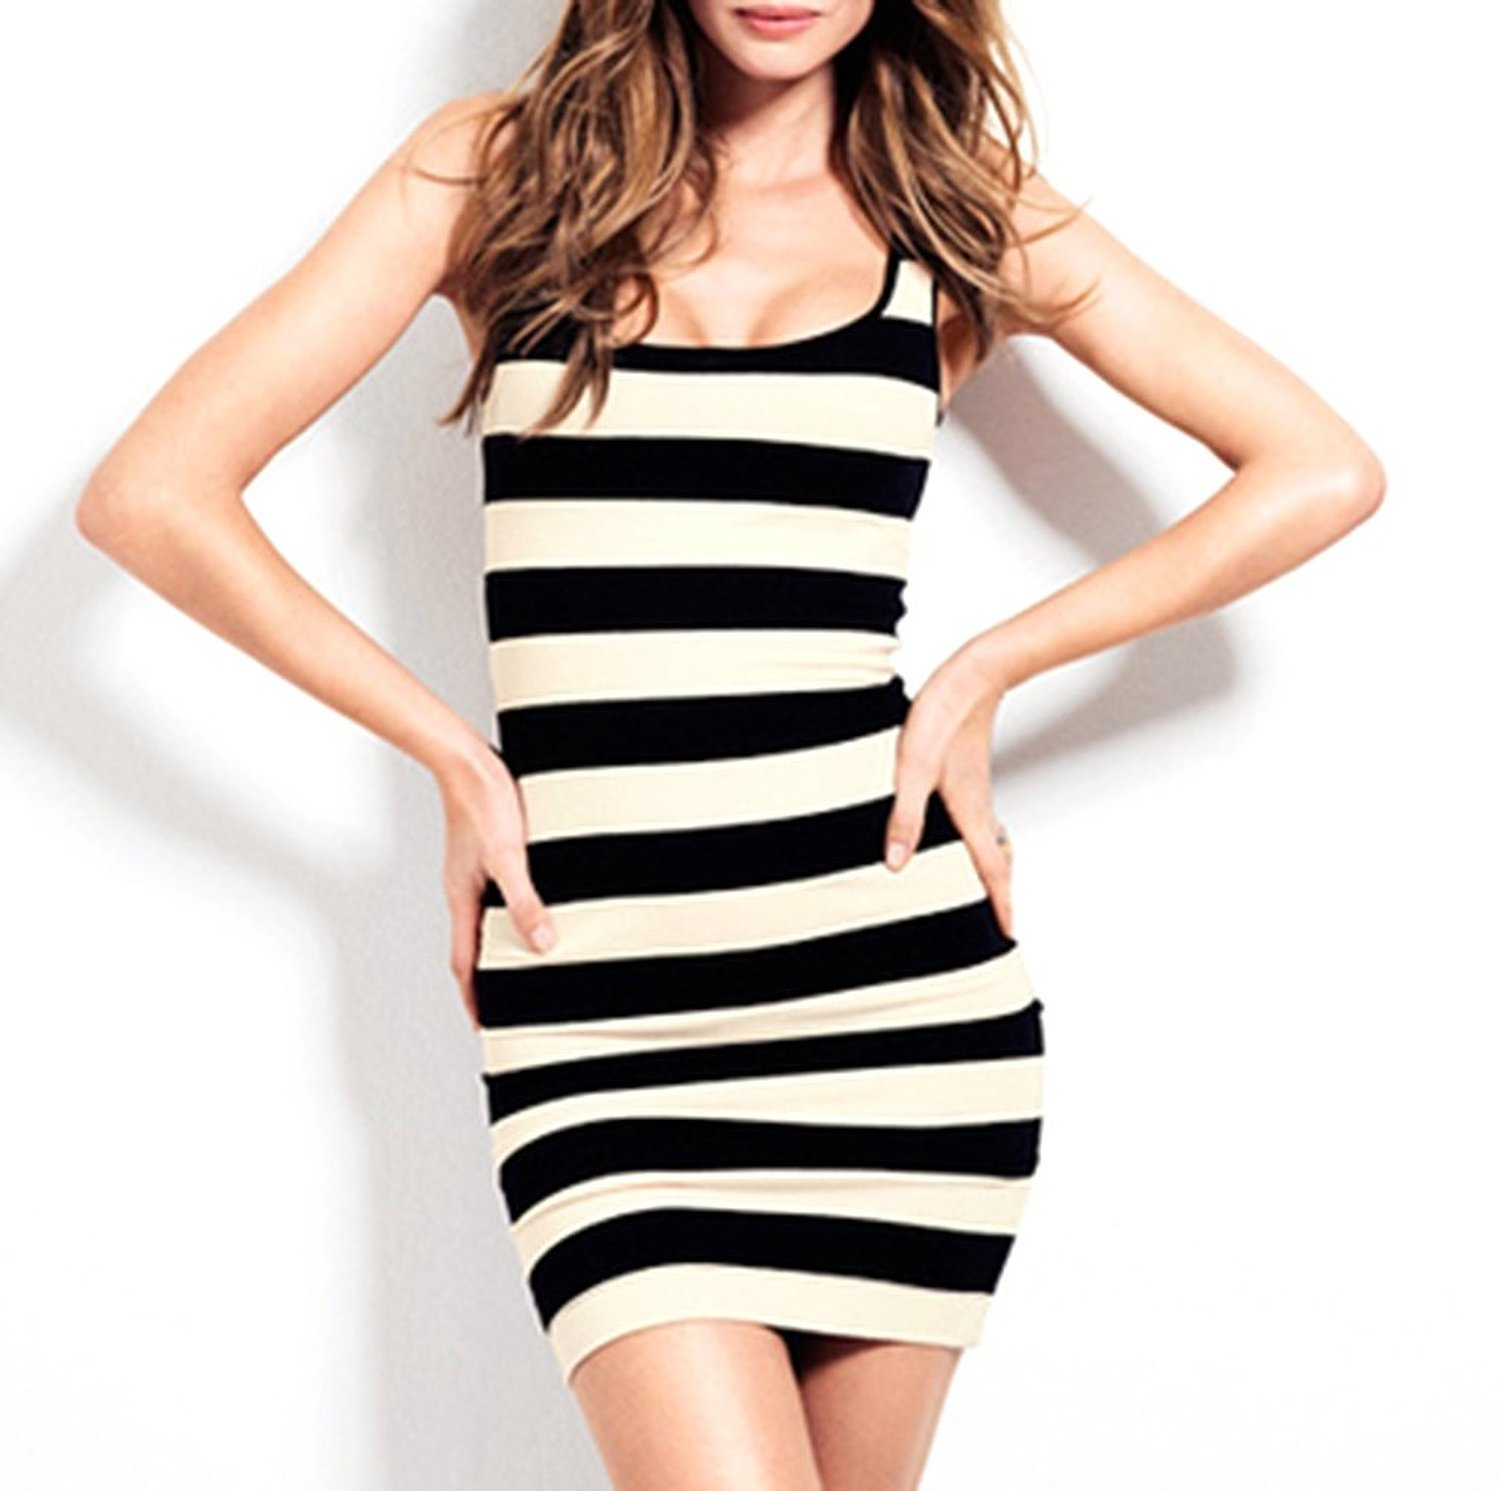 Haoduoyi women's black white striped refining clipping tight elastic dress at amazon women's clothing store: